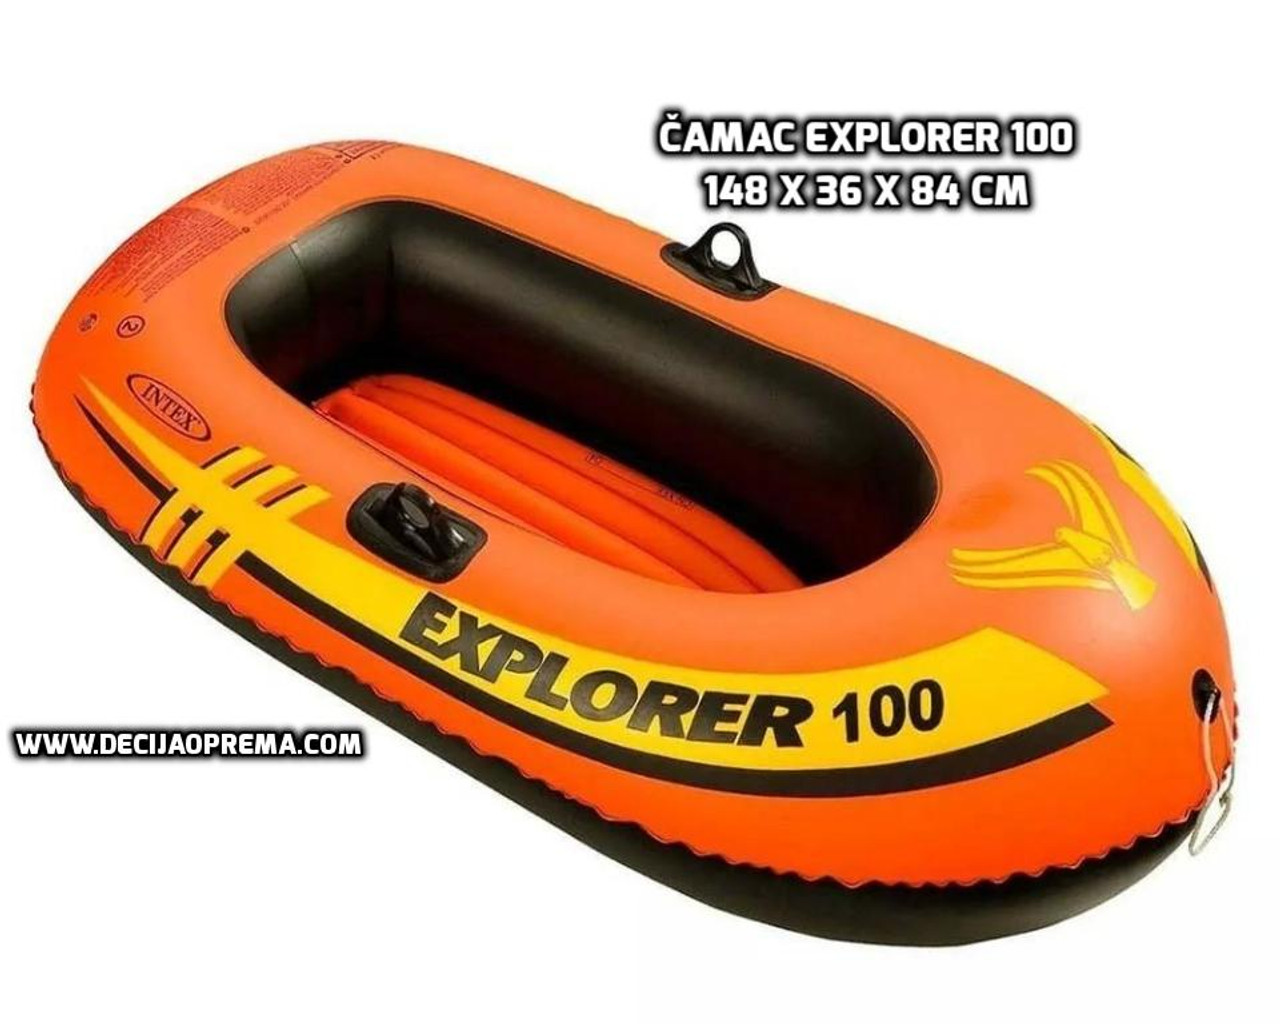 Čamac Explorer 100 INTEX model 58329